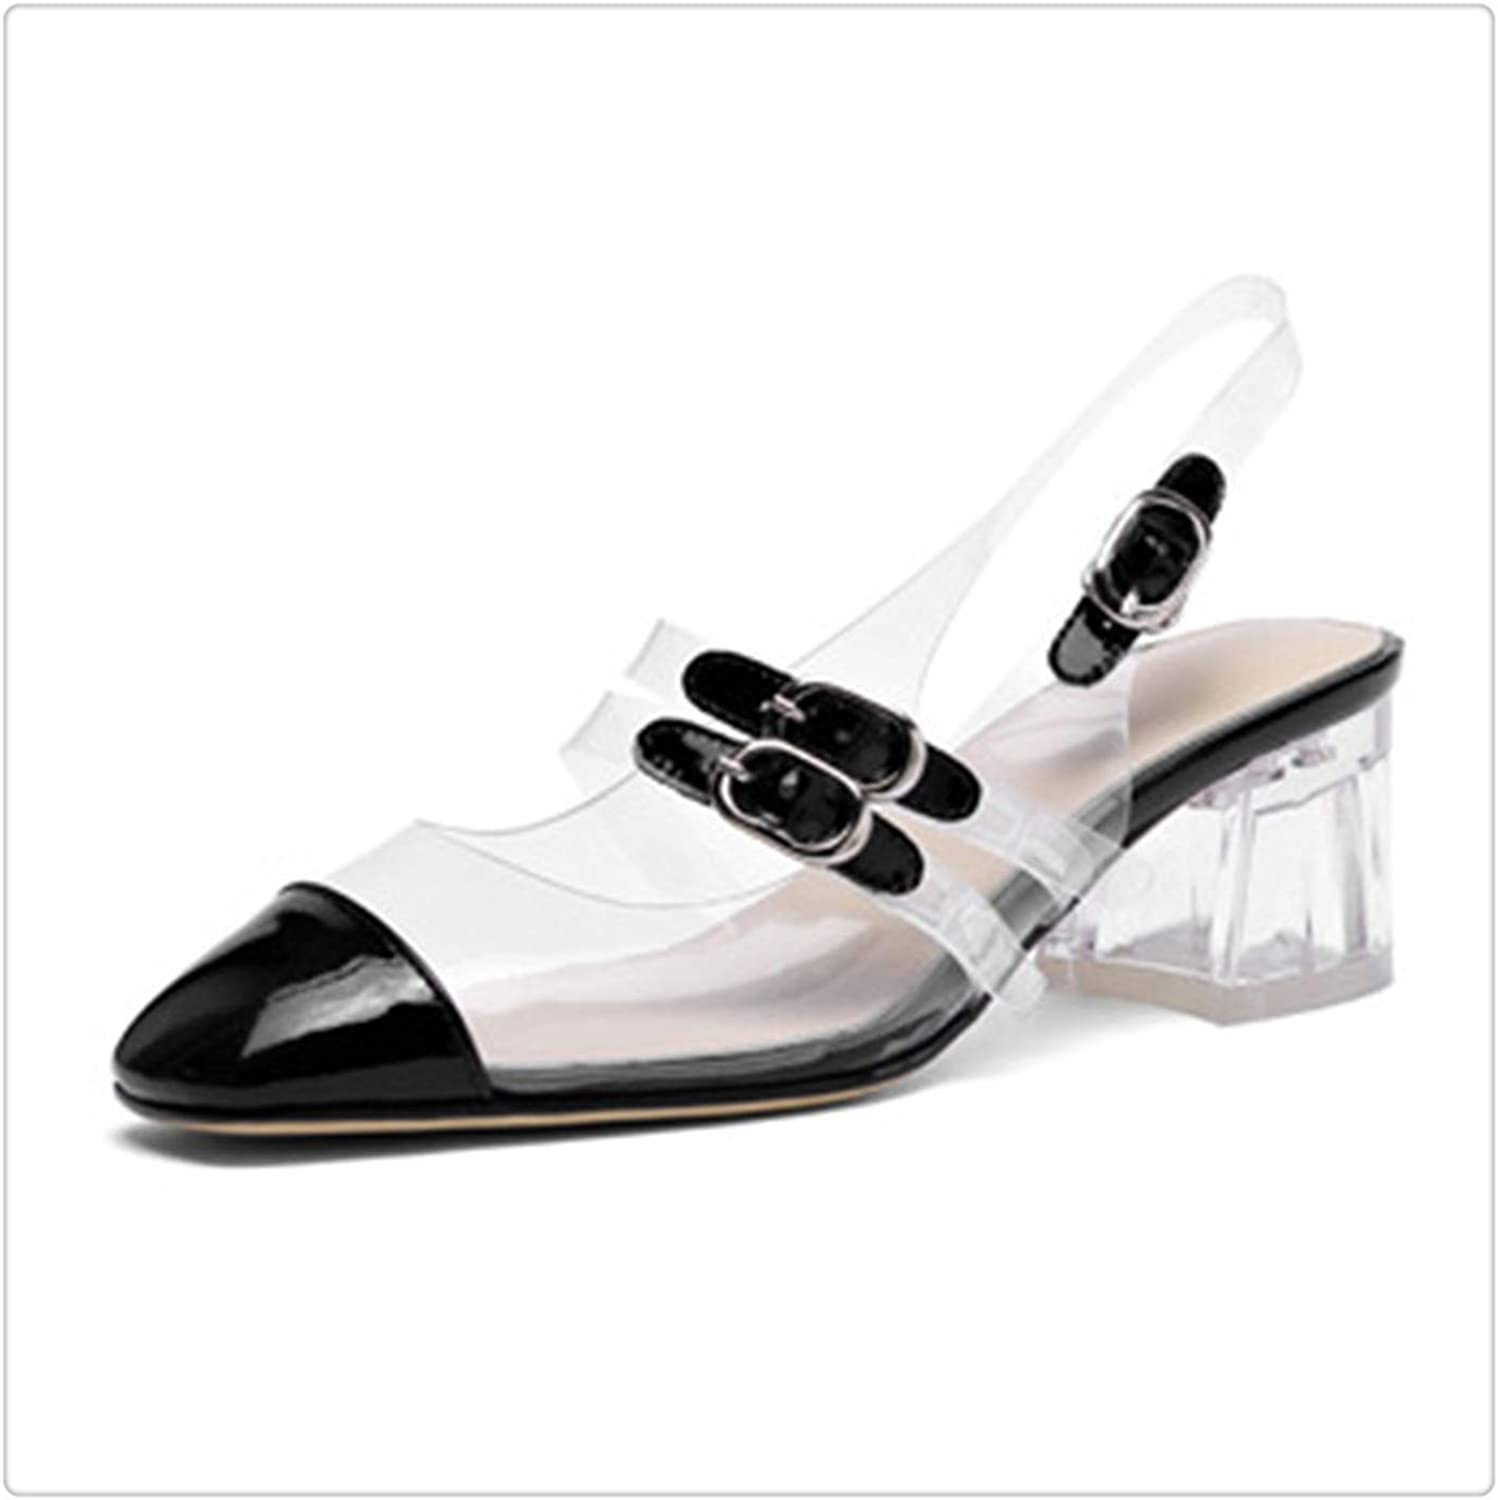 HROST& 2019 New Spring Summer Square Toe Patent Leather Buckle Strap Mixed colorsHigh Heels Sandals Women Fashion Tide 10SJ359 Black 37